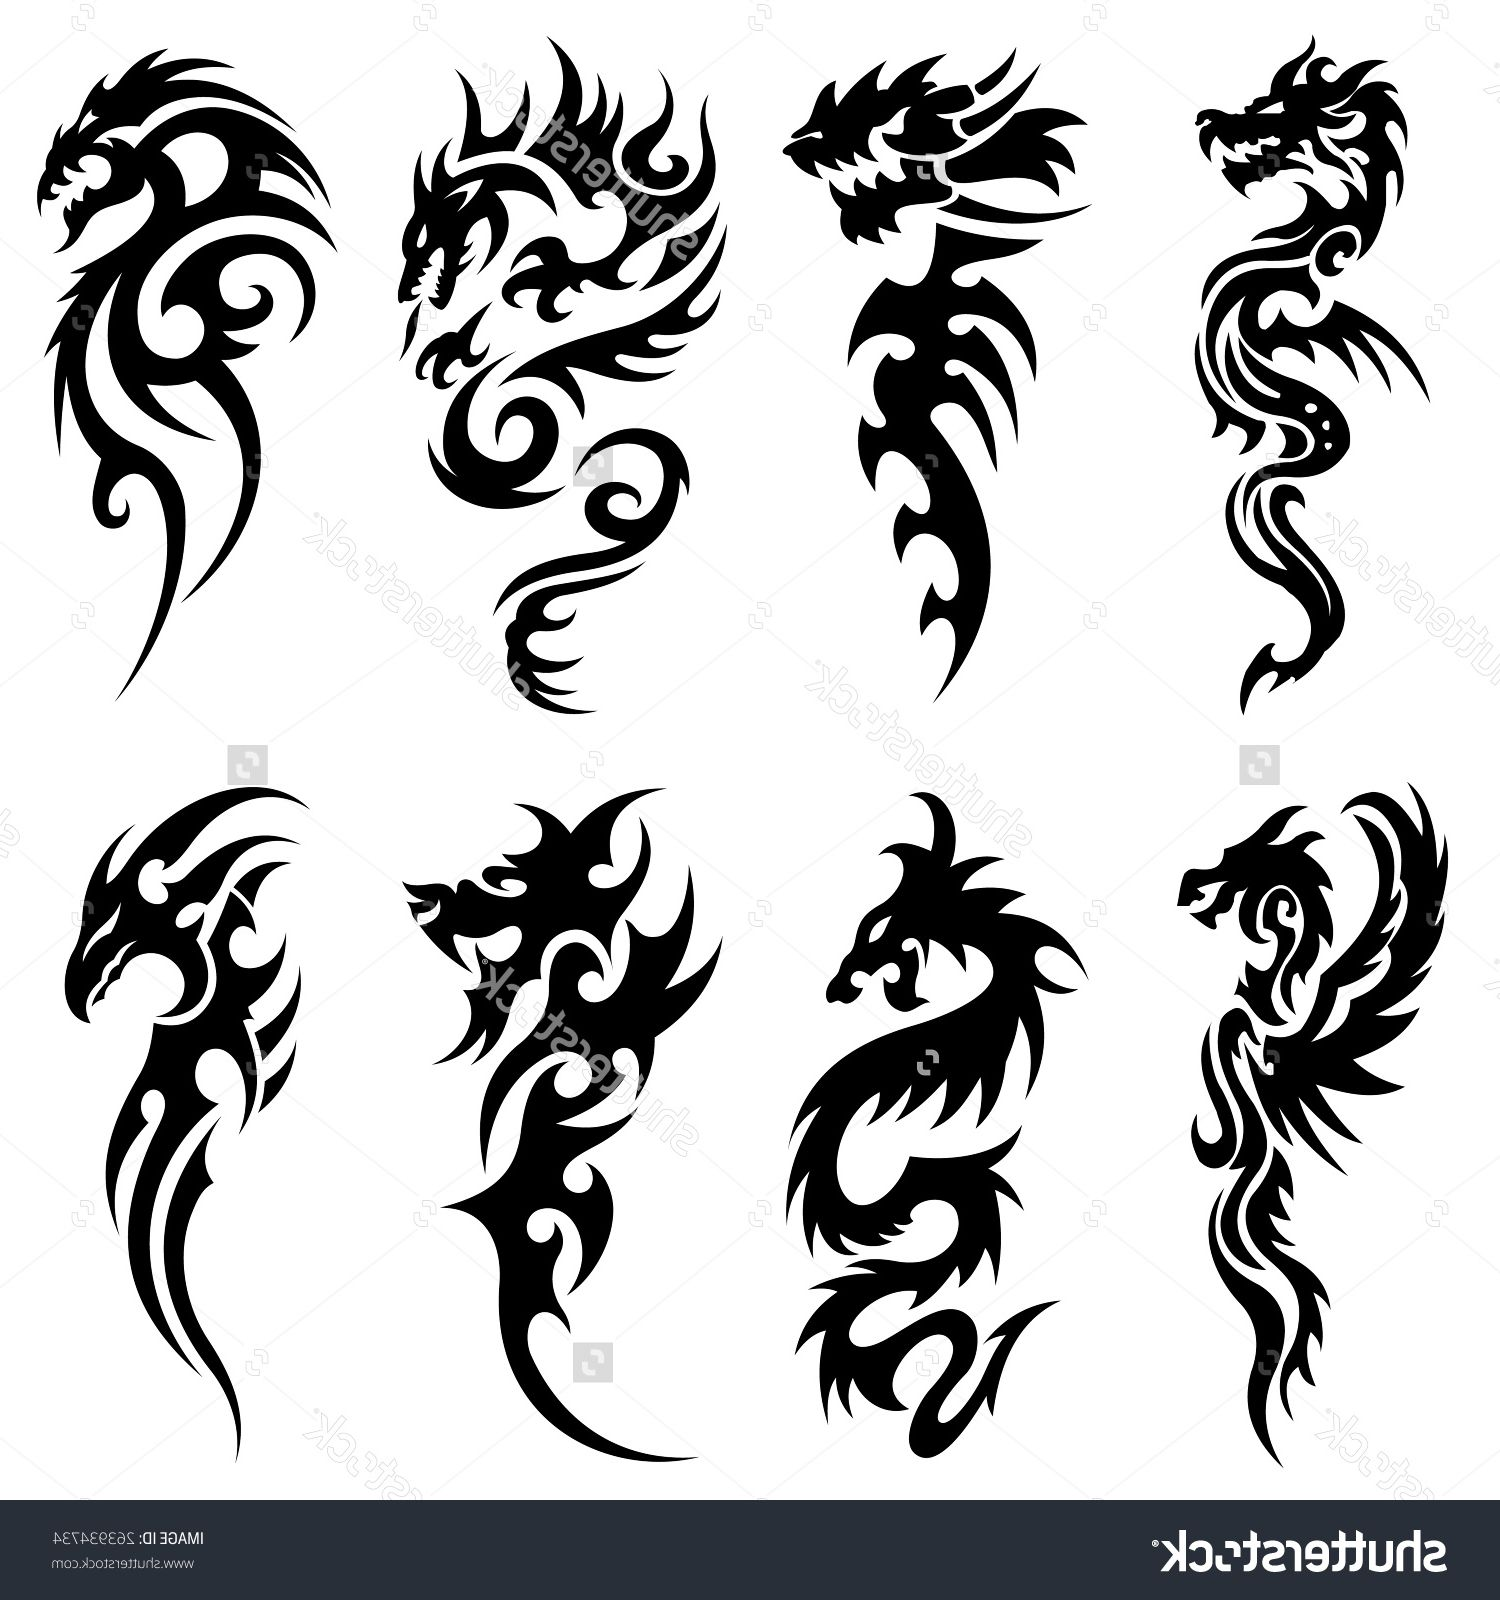 Tribal Snake Tattoo Designs Scary Tribal Snake Tattoo Design With